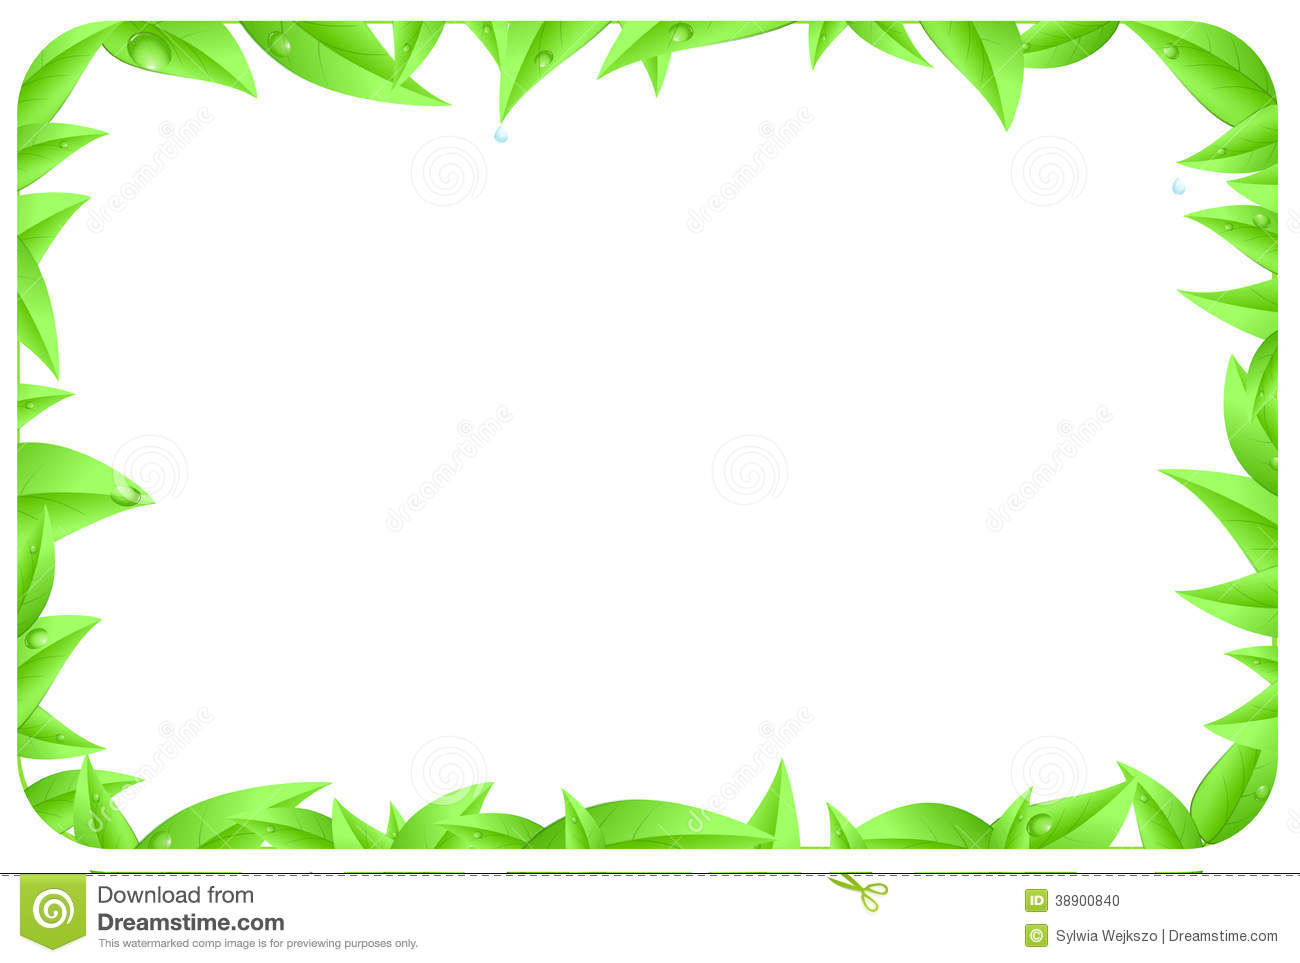 Nature 8x11 Page Border Clipart - Clipart Kid